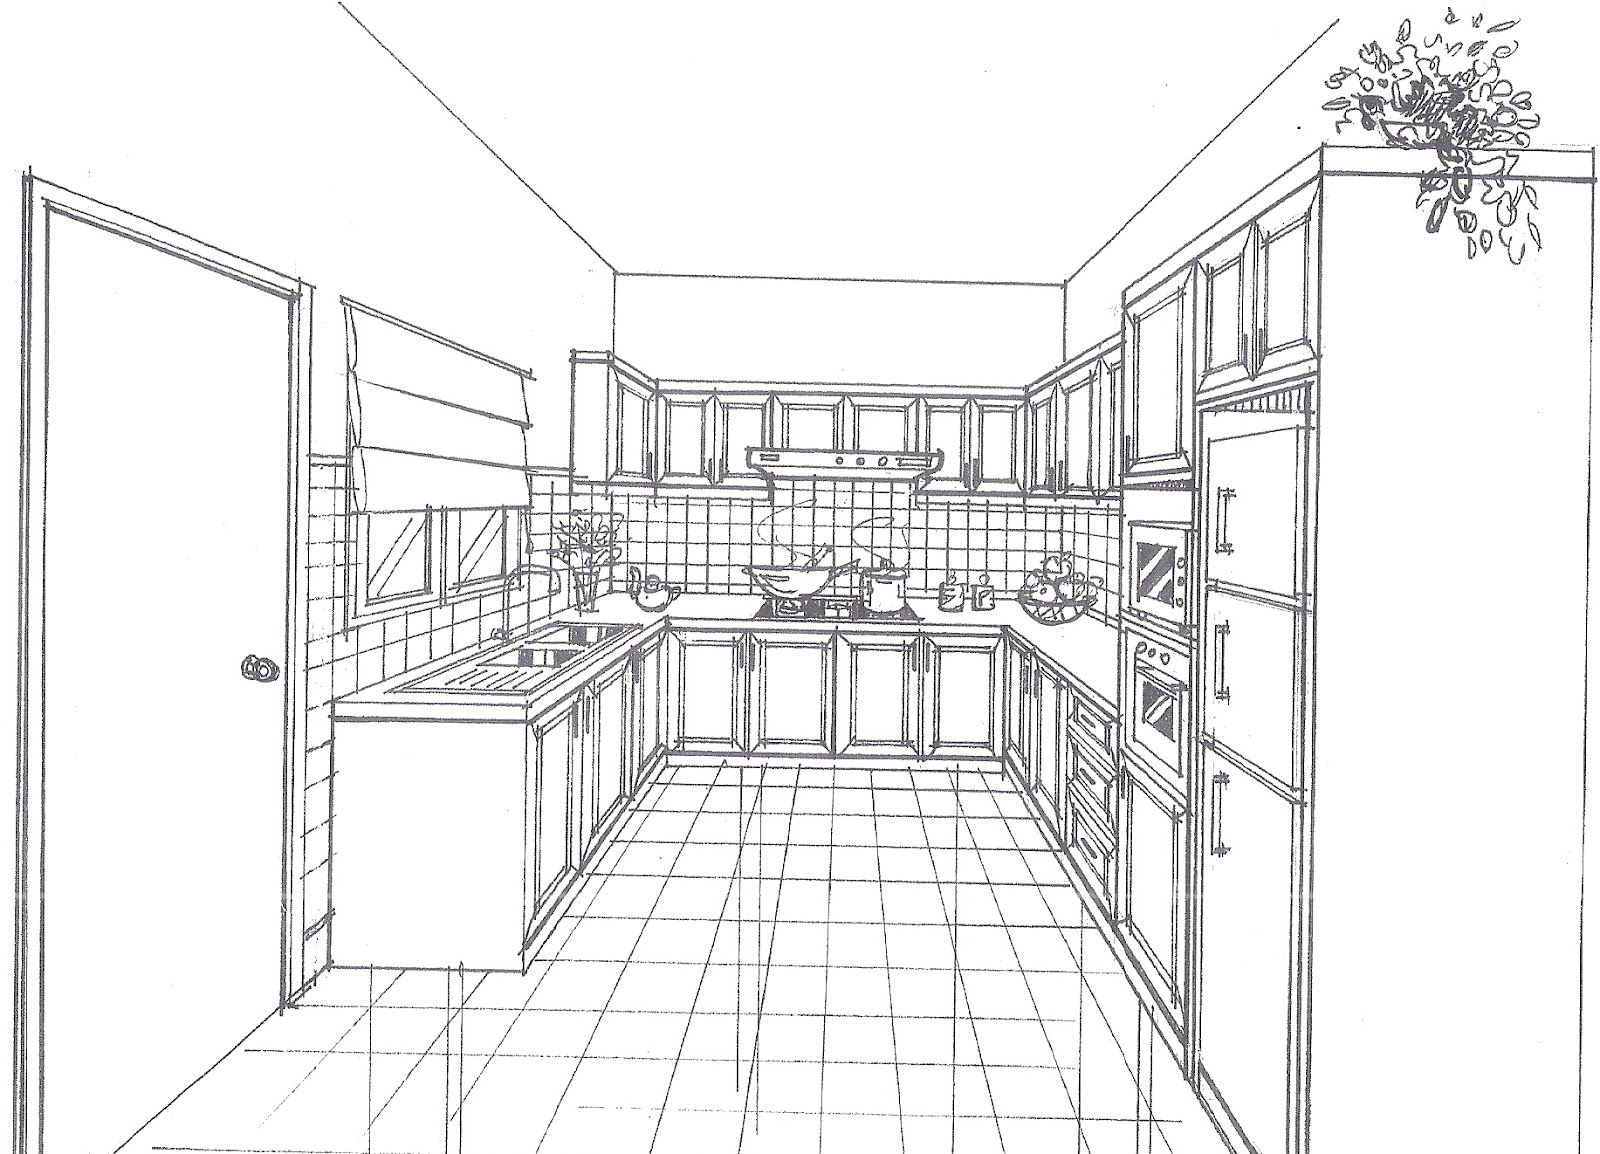 Bathroom perspective drawing - 1 Bp Blogspot Com 7ob1fwggv9s T G_lk_dapi Aaaaaaaaaew Bmfrd5qlj68 S1600 Perspective